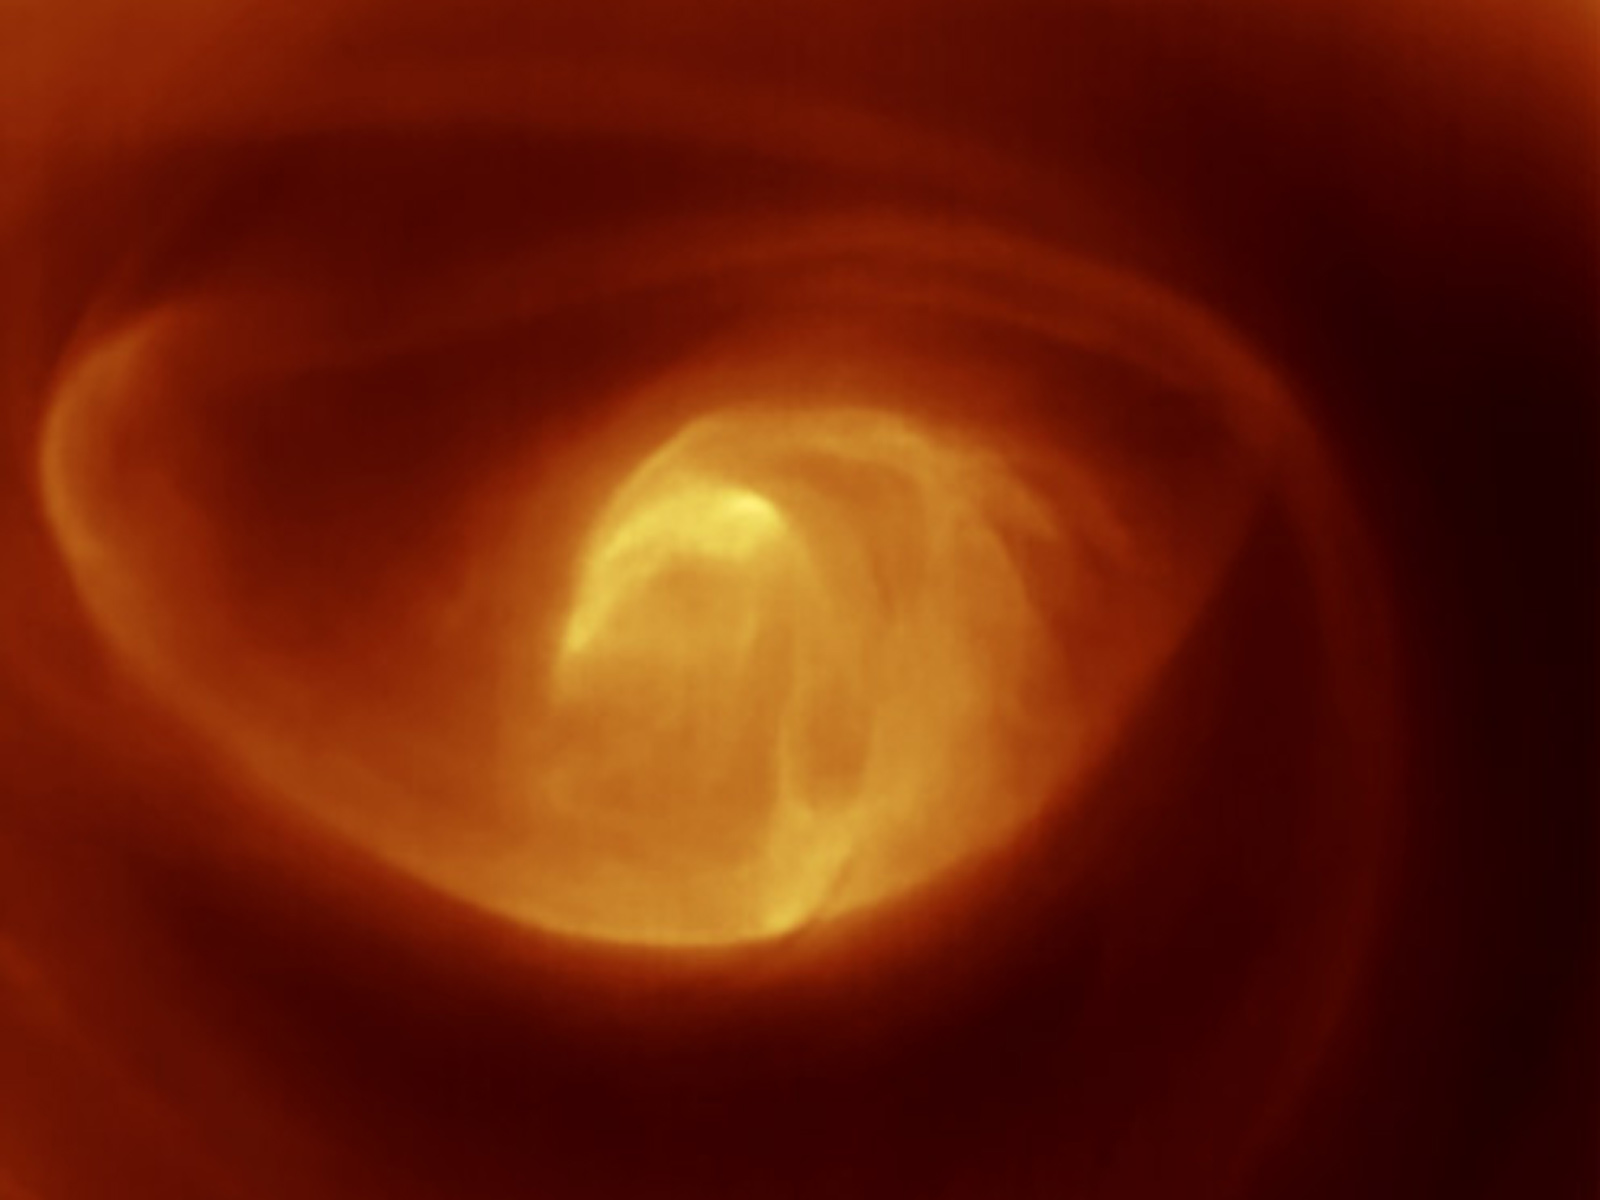 Swirling Vortex on Venus Caught in Action | Space Wallpaper